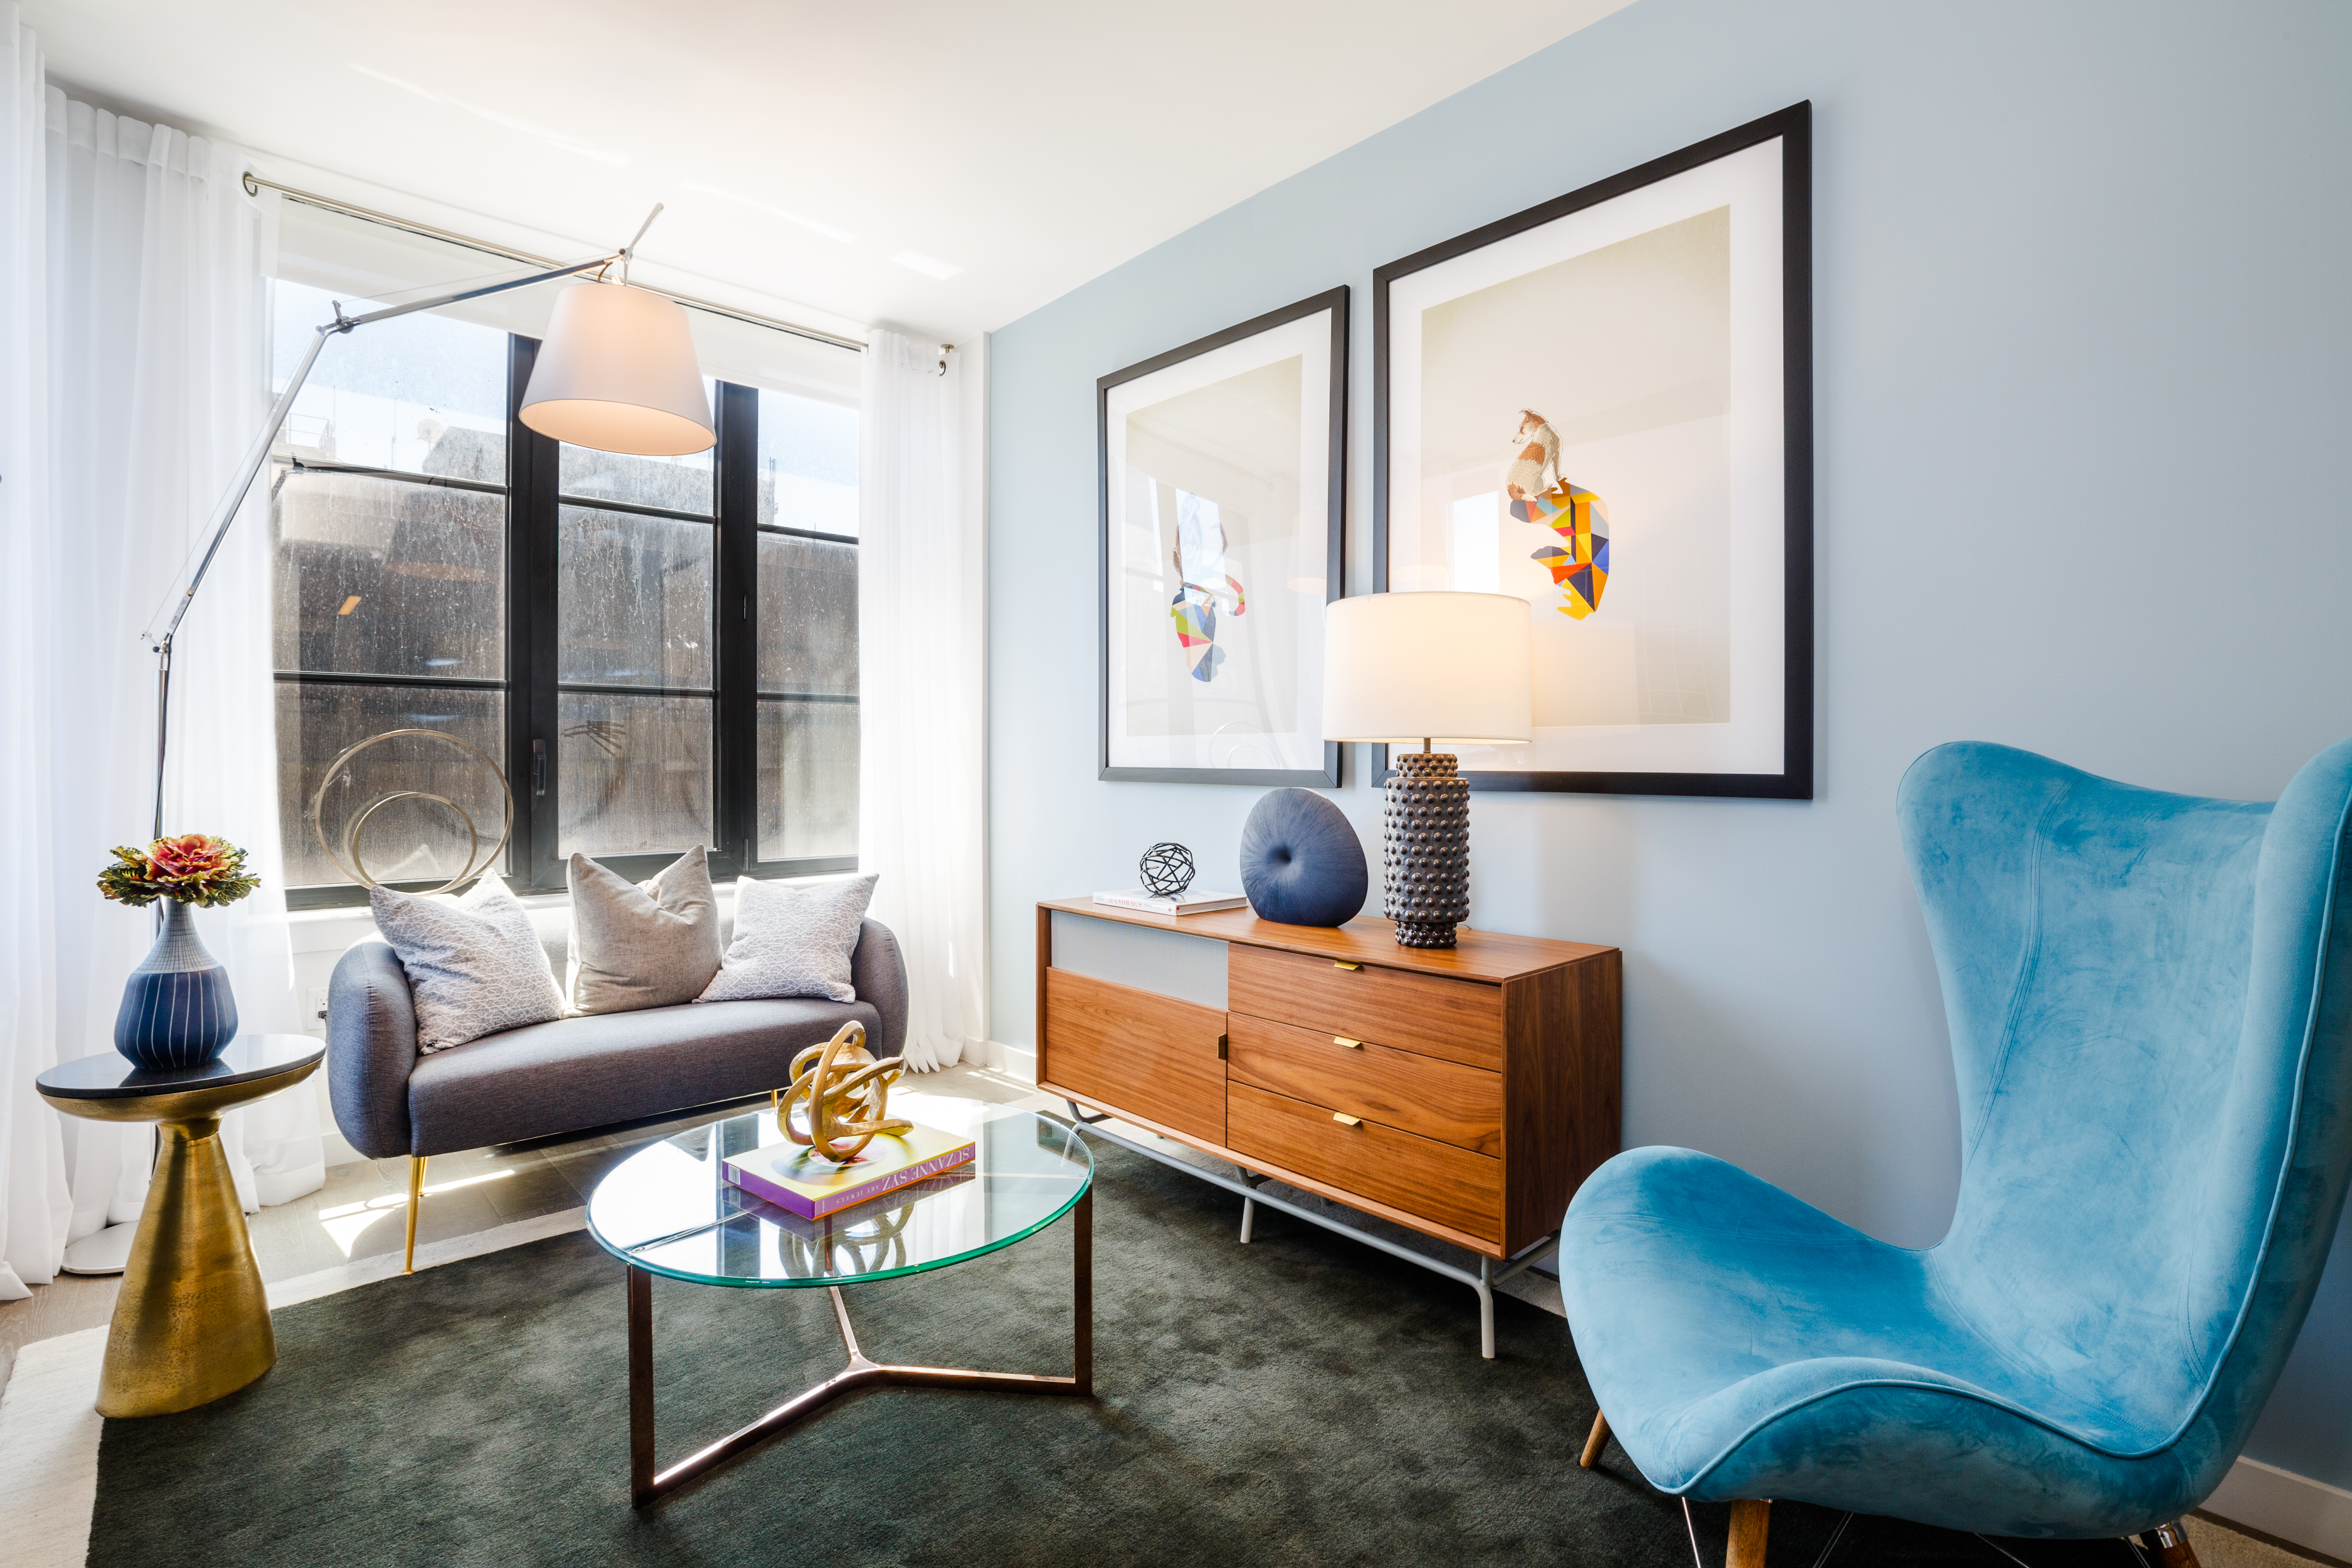 A living area with light blue walls, a large window, a standing lamp, a glass coffee table, and a blue chair.